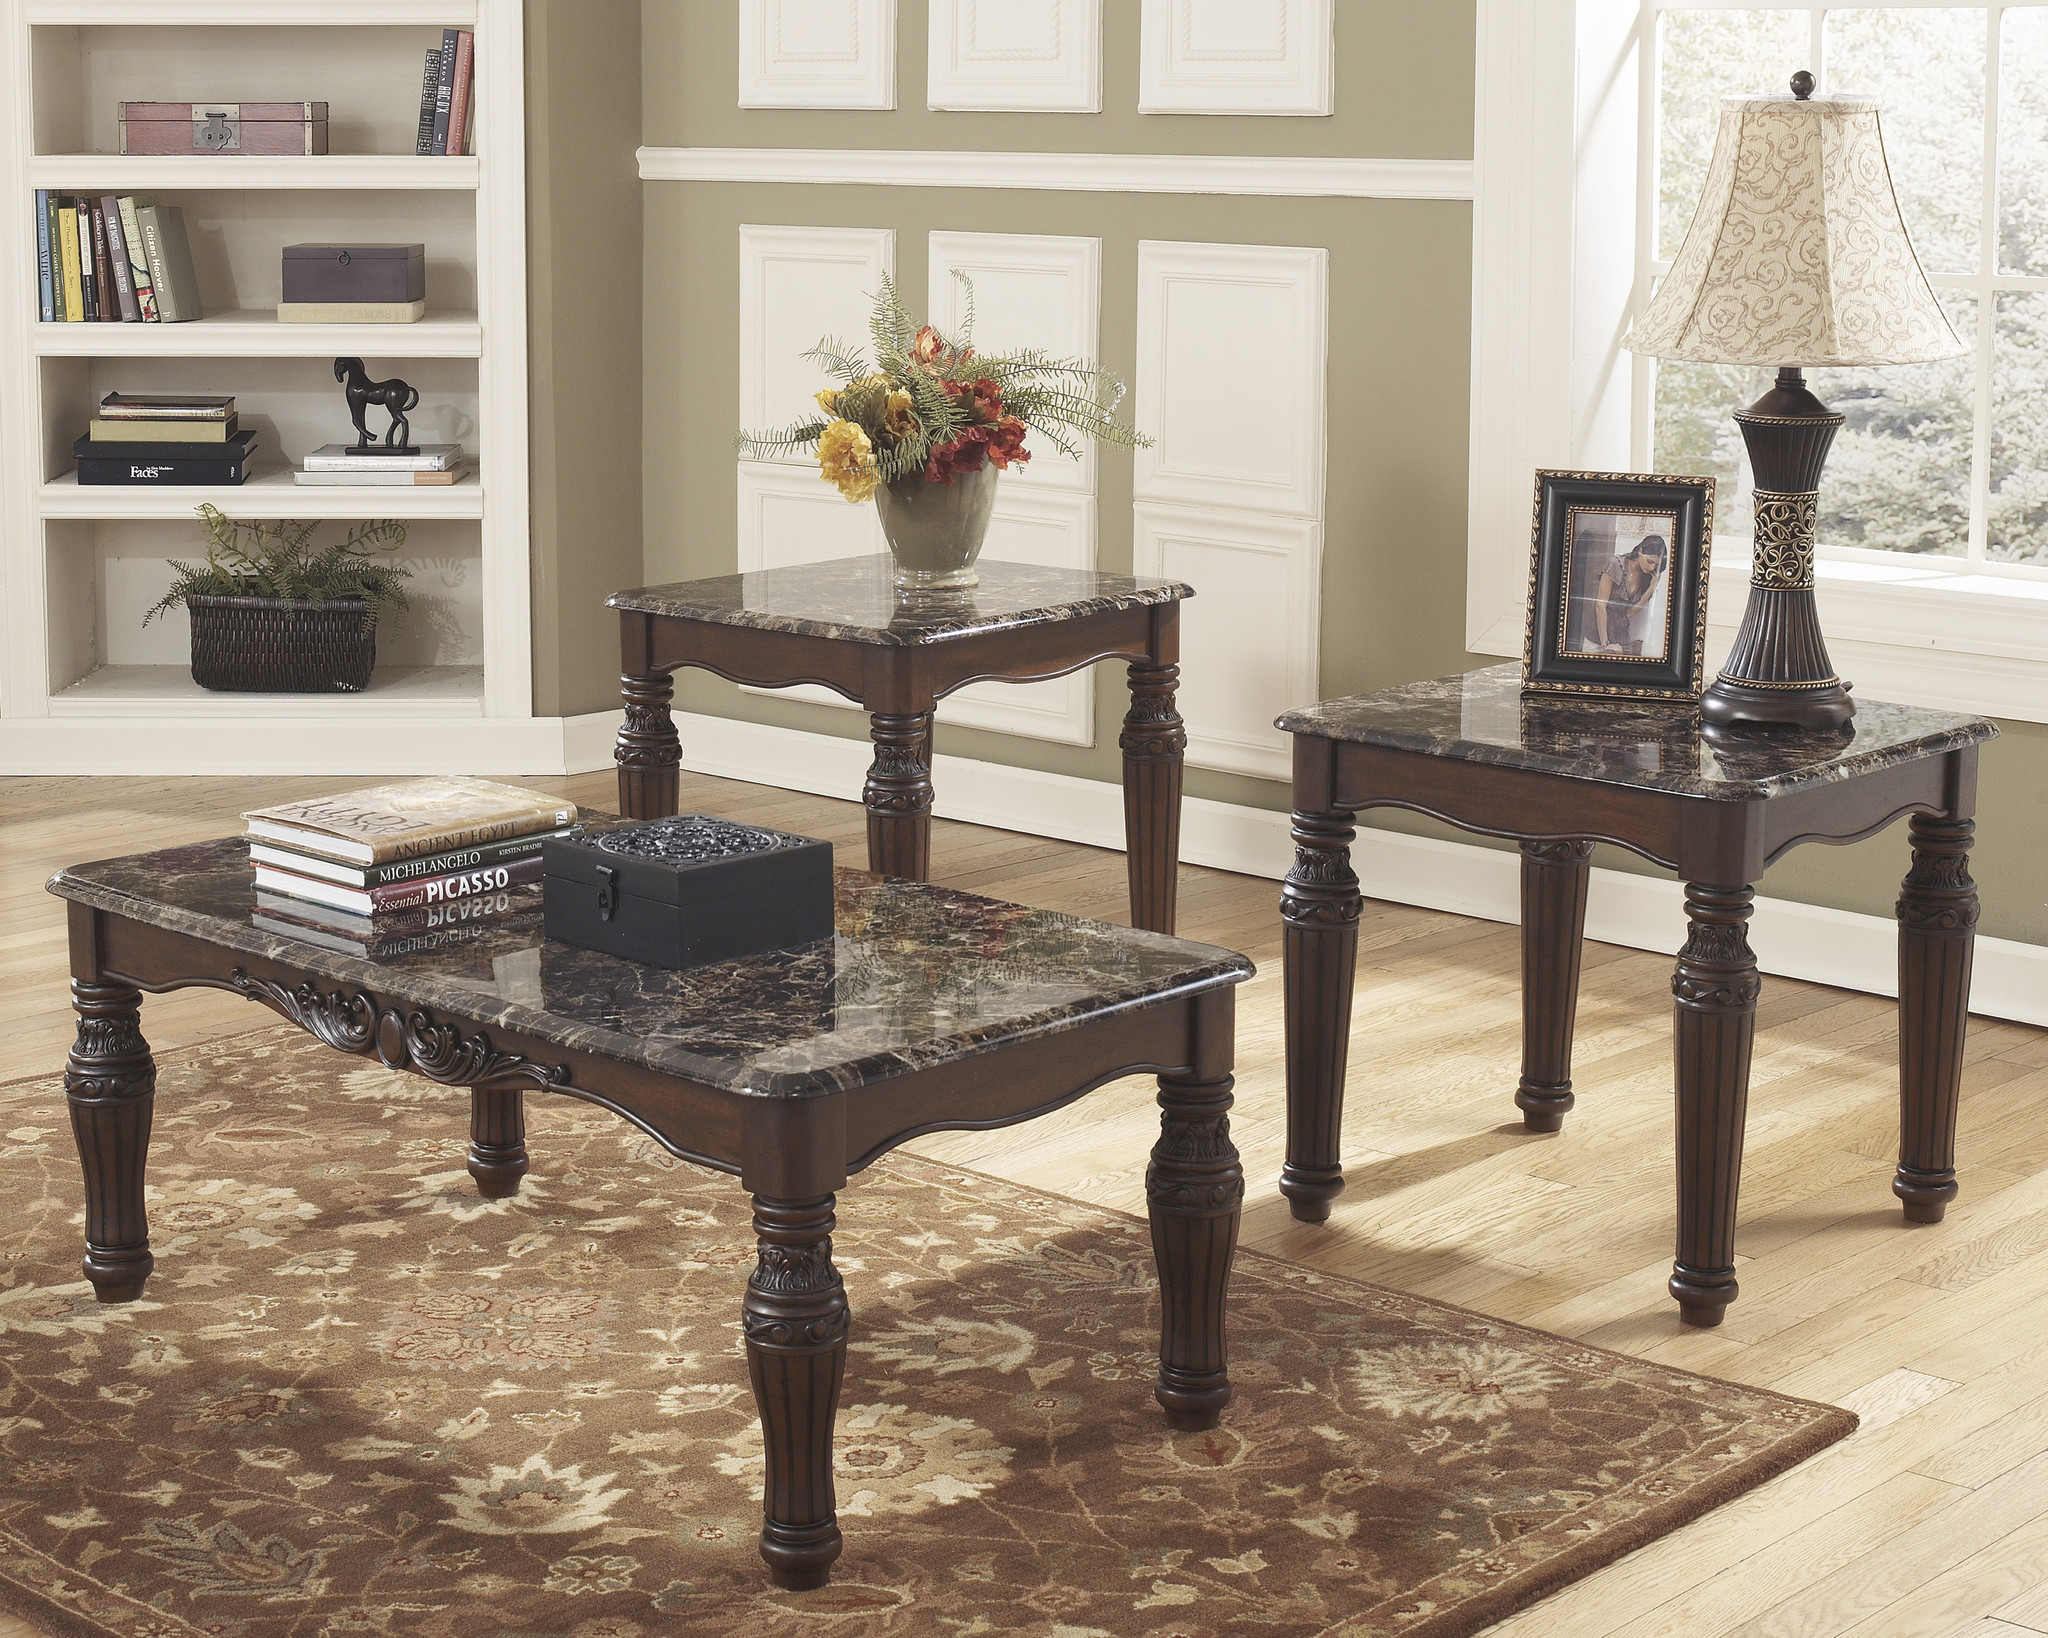 t533-13 North Shore Occasional Table Set